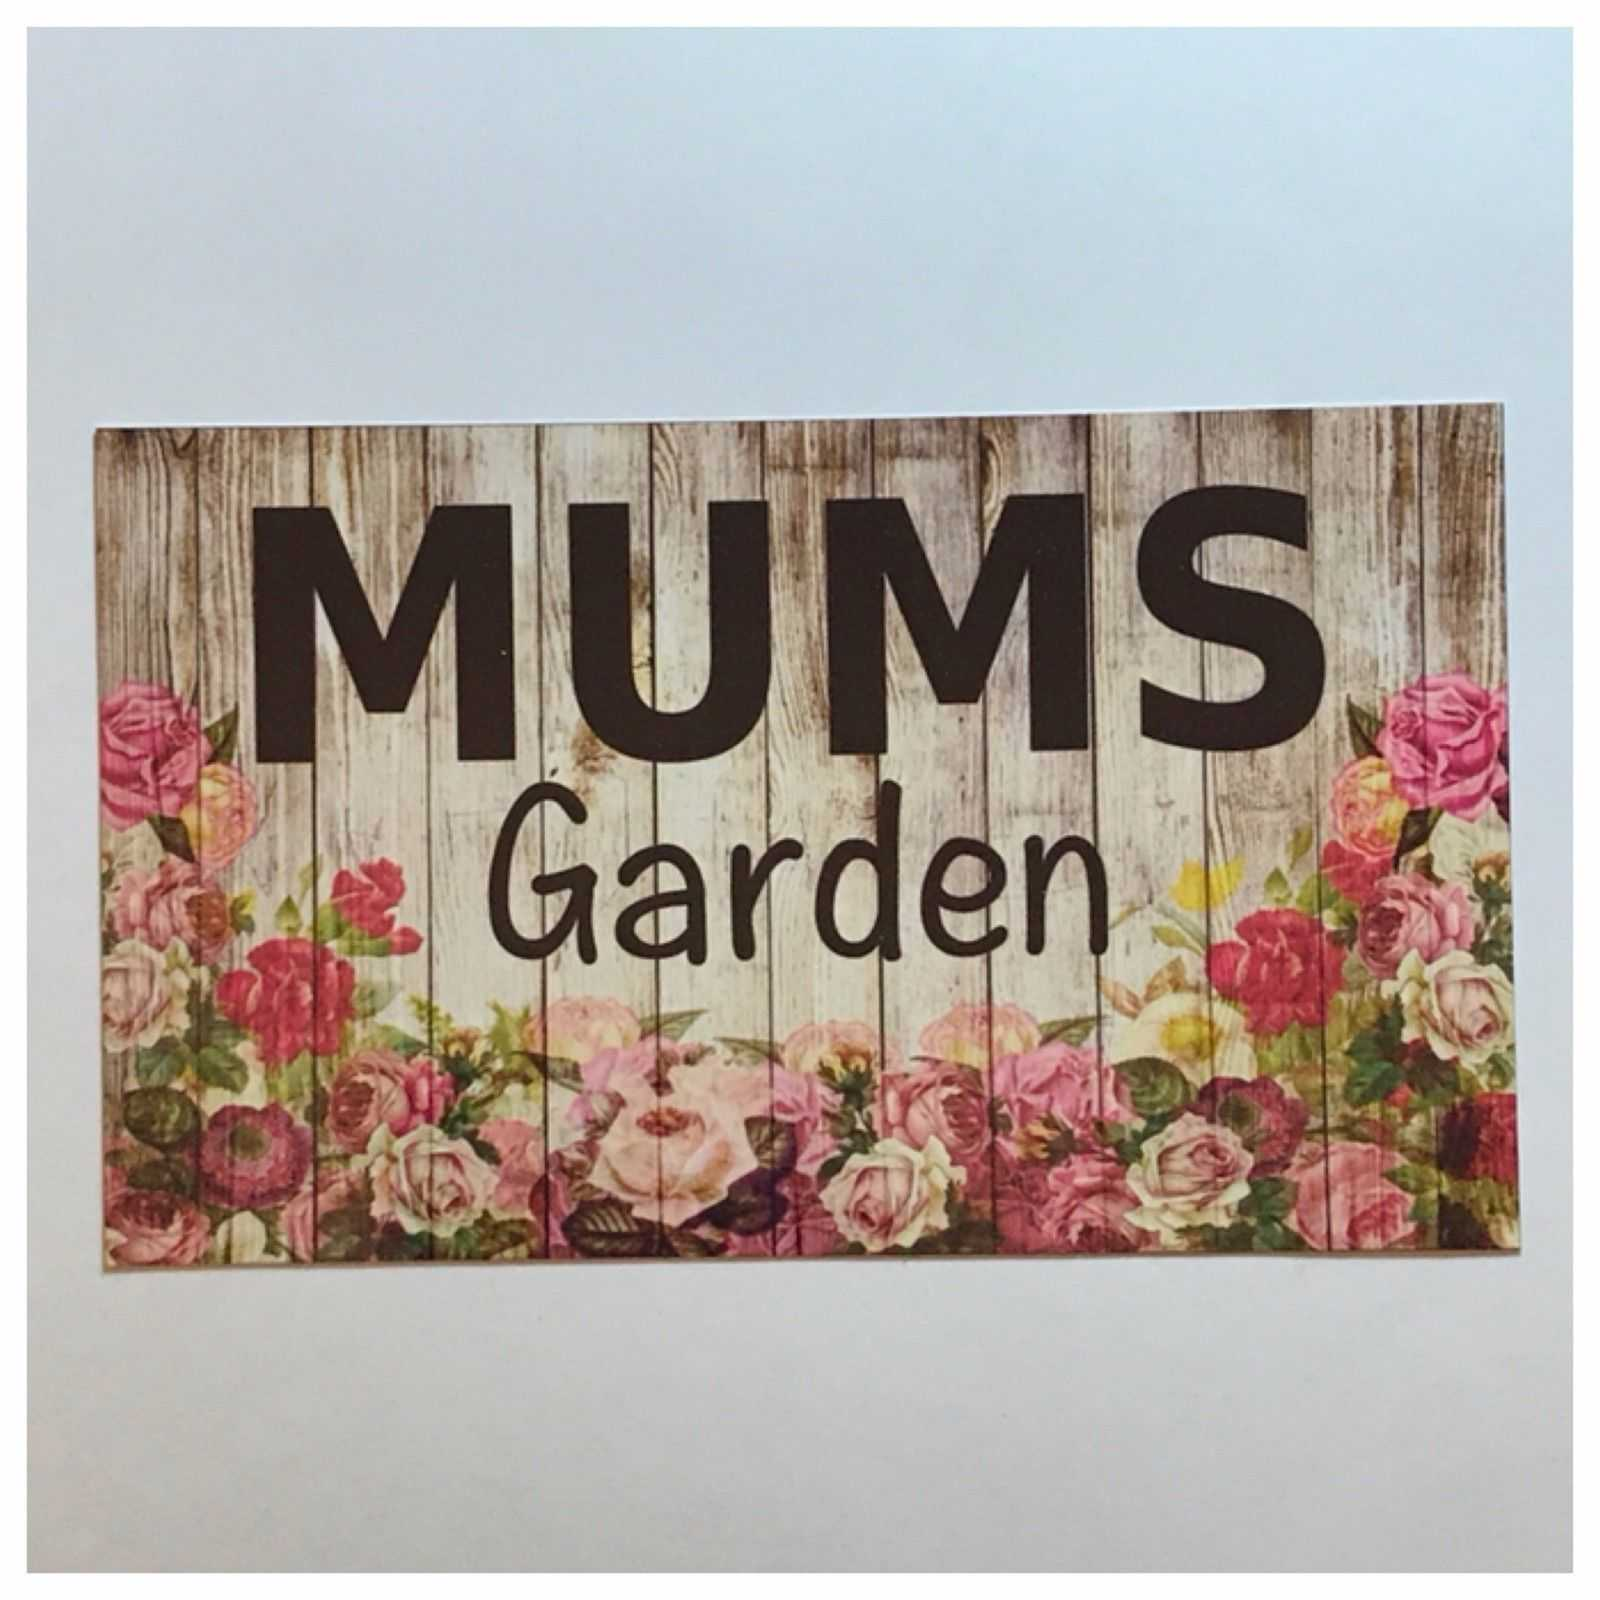 Mums Garden Sign Floral - The Renmy Store